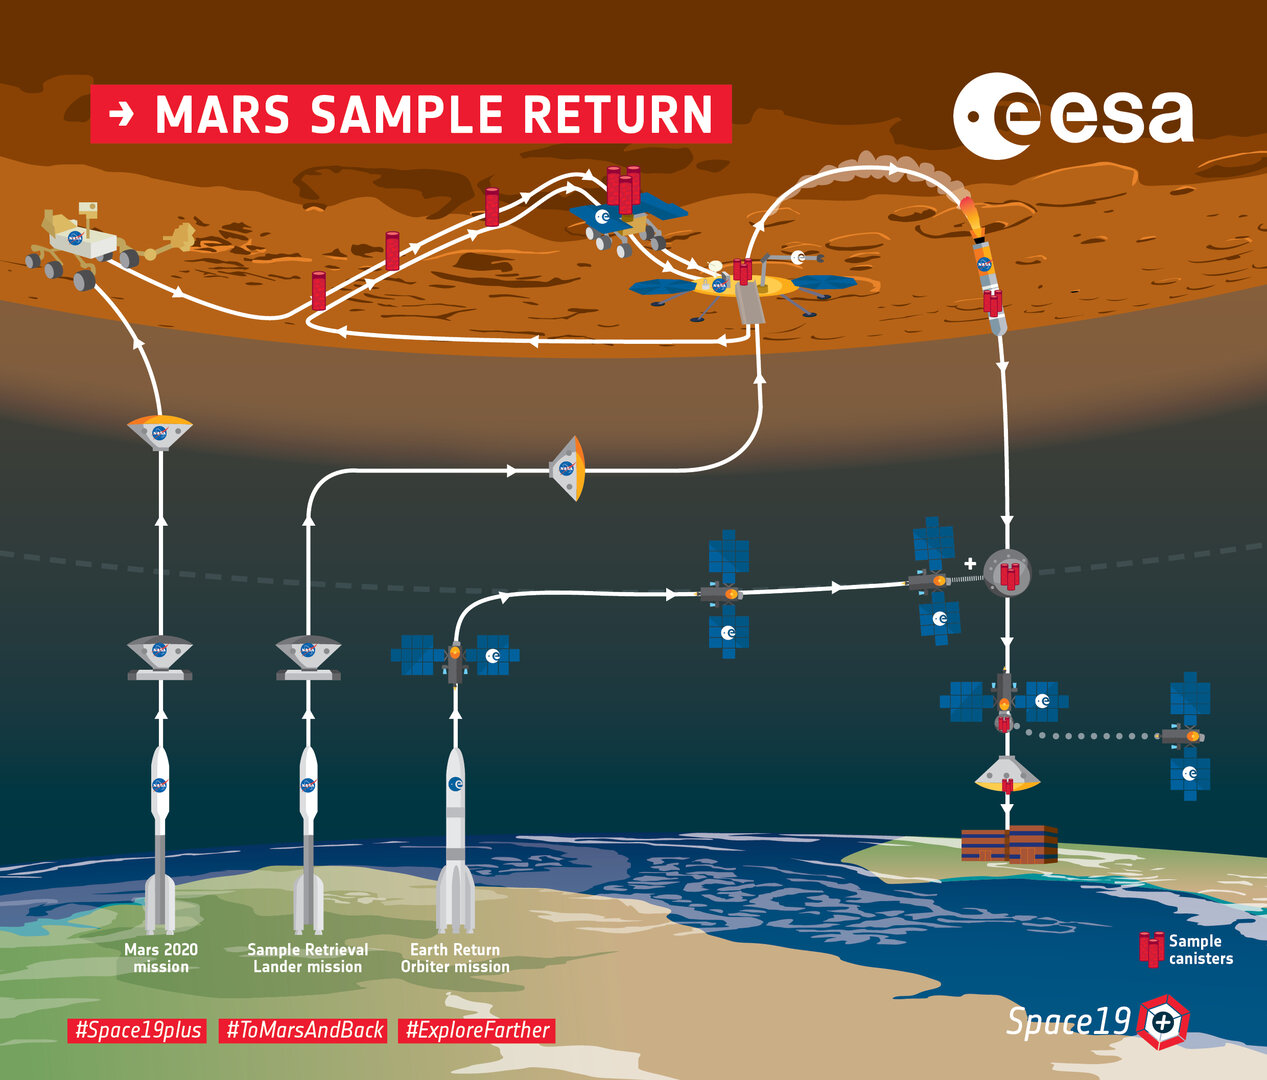 Mars_Sample_Return_overview_infographic_pillars